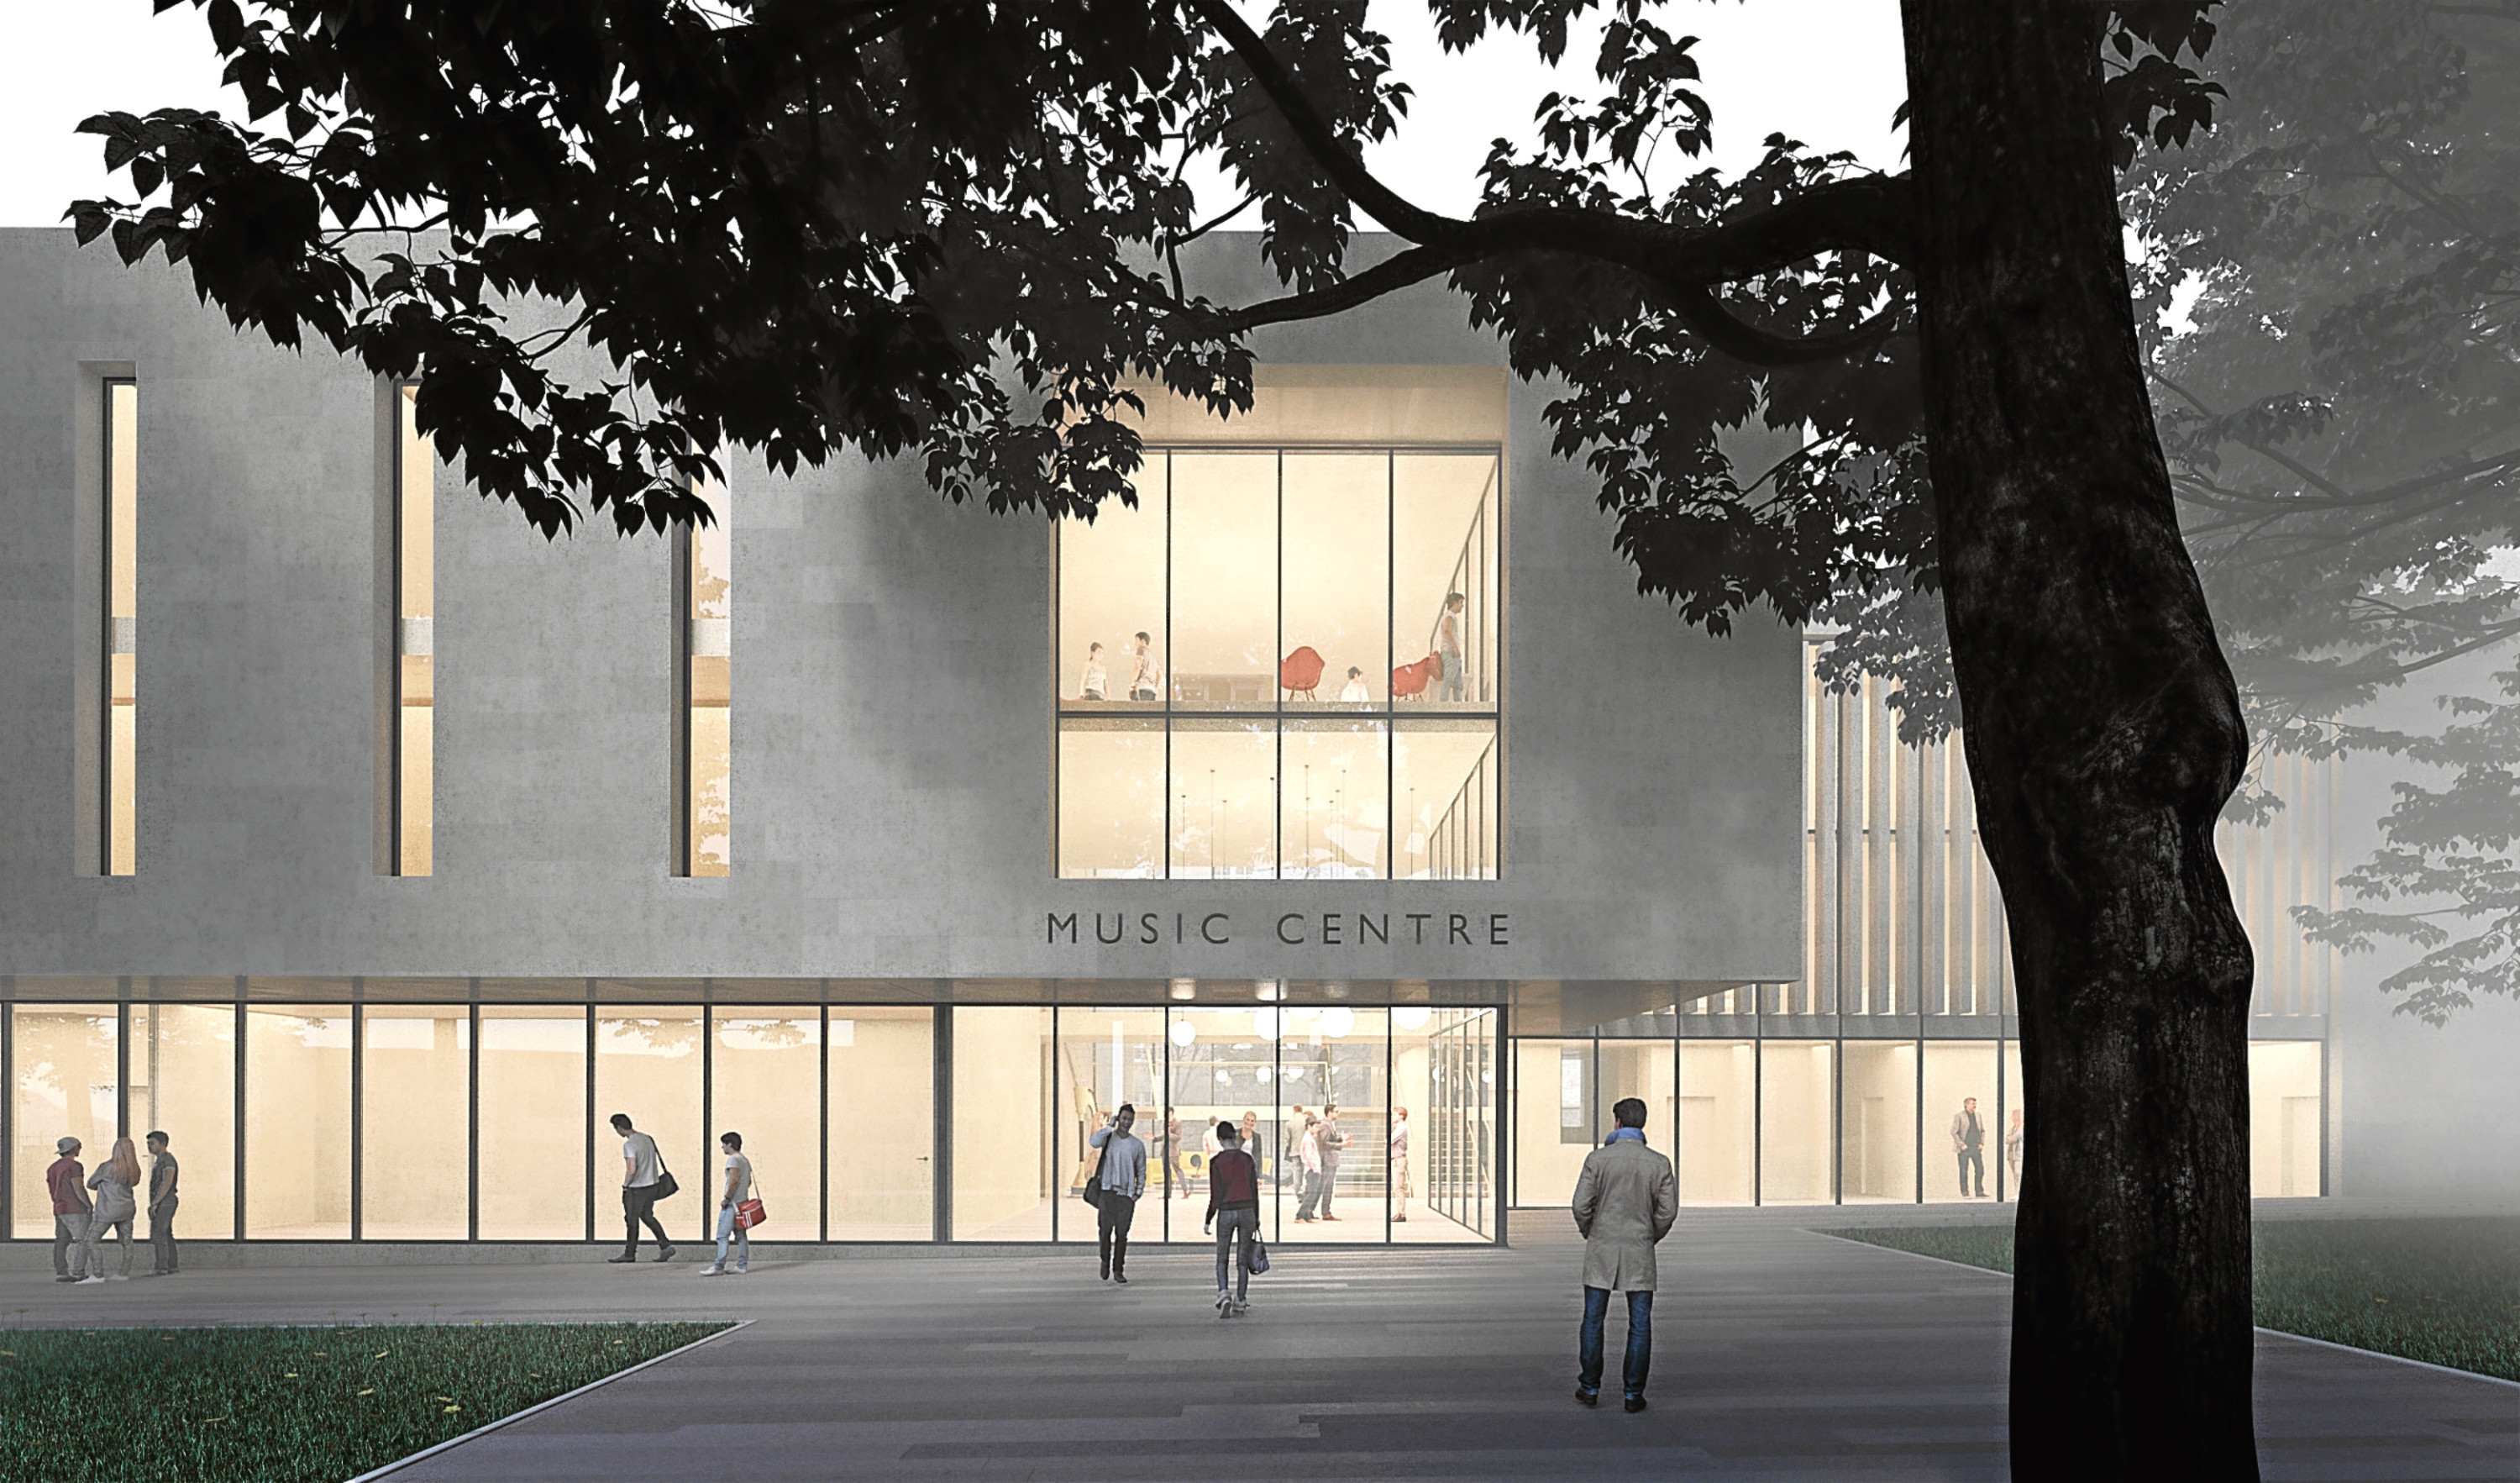 An artist's impression of how the new music centre could look.